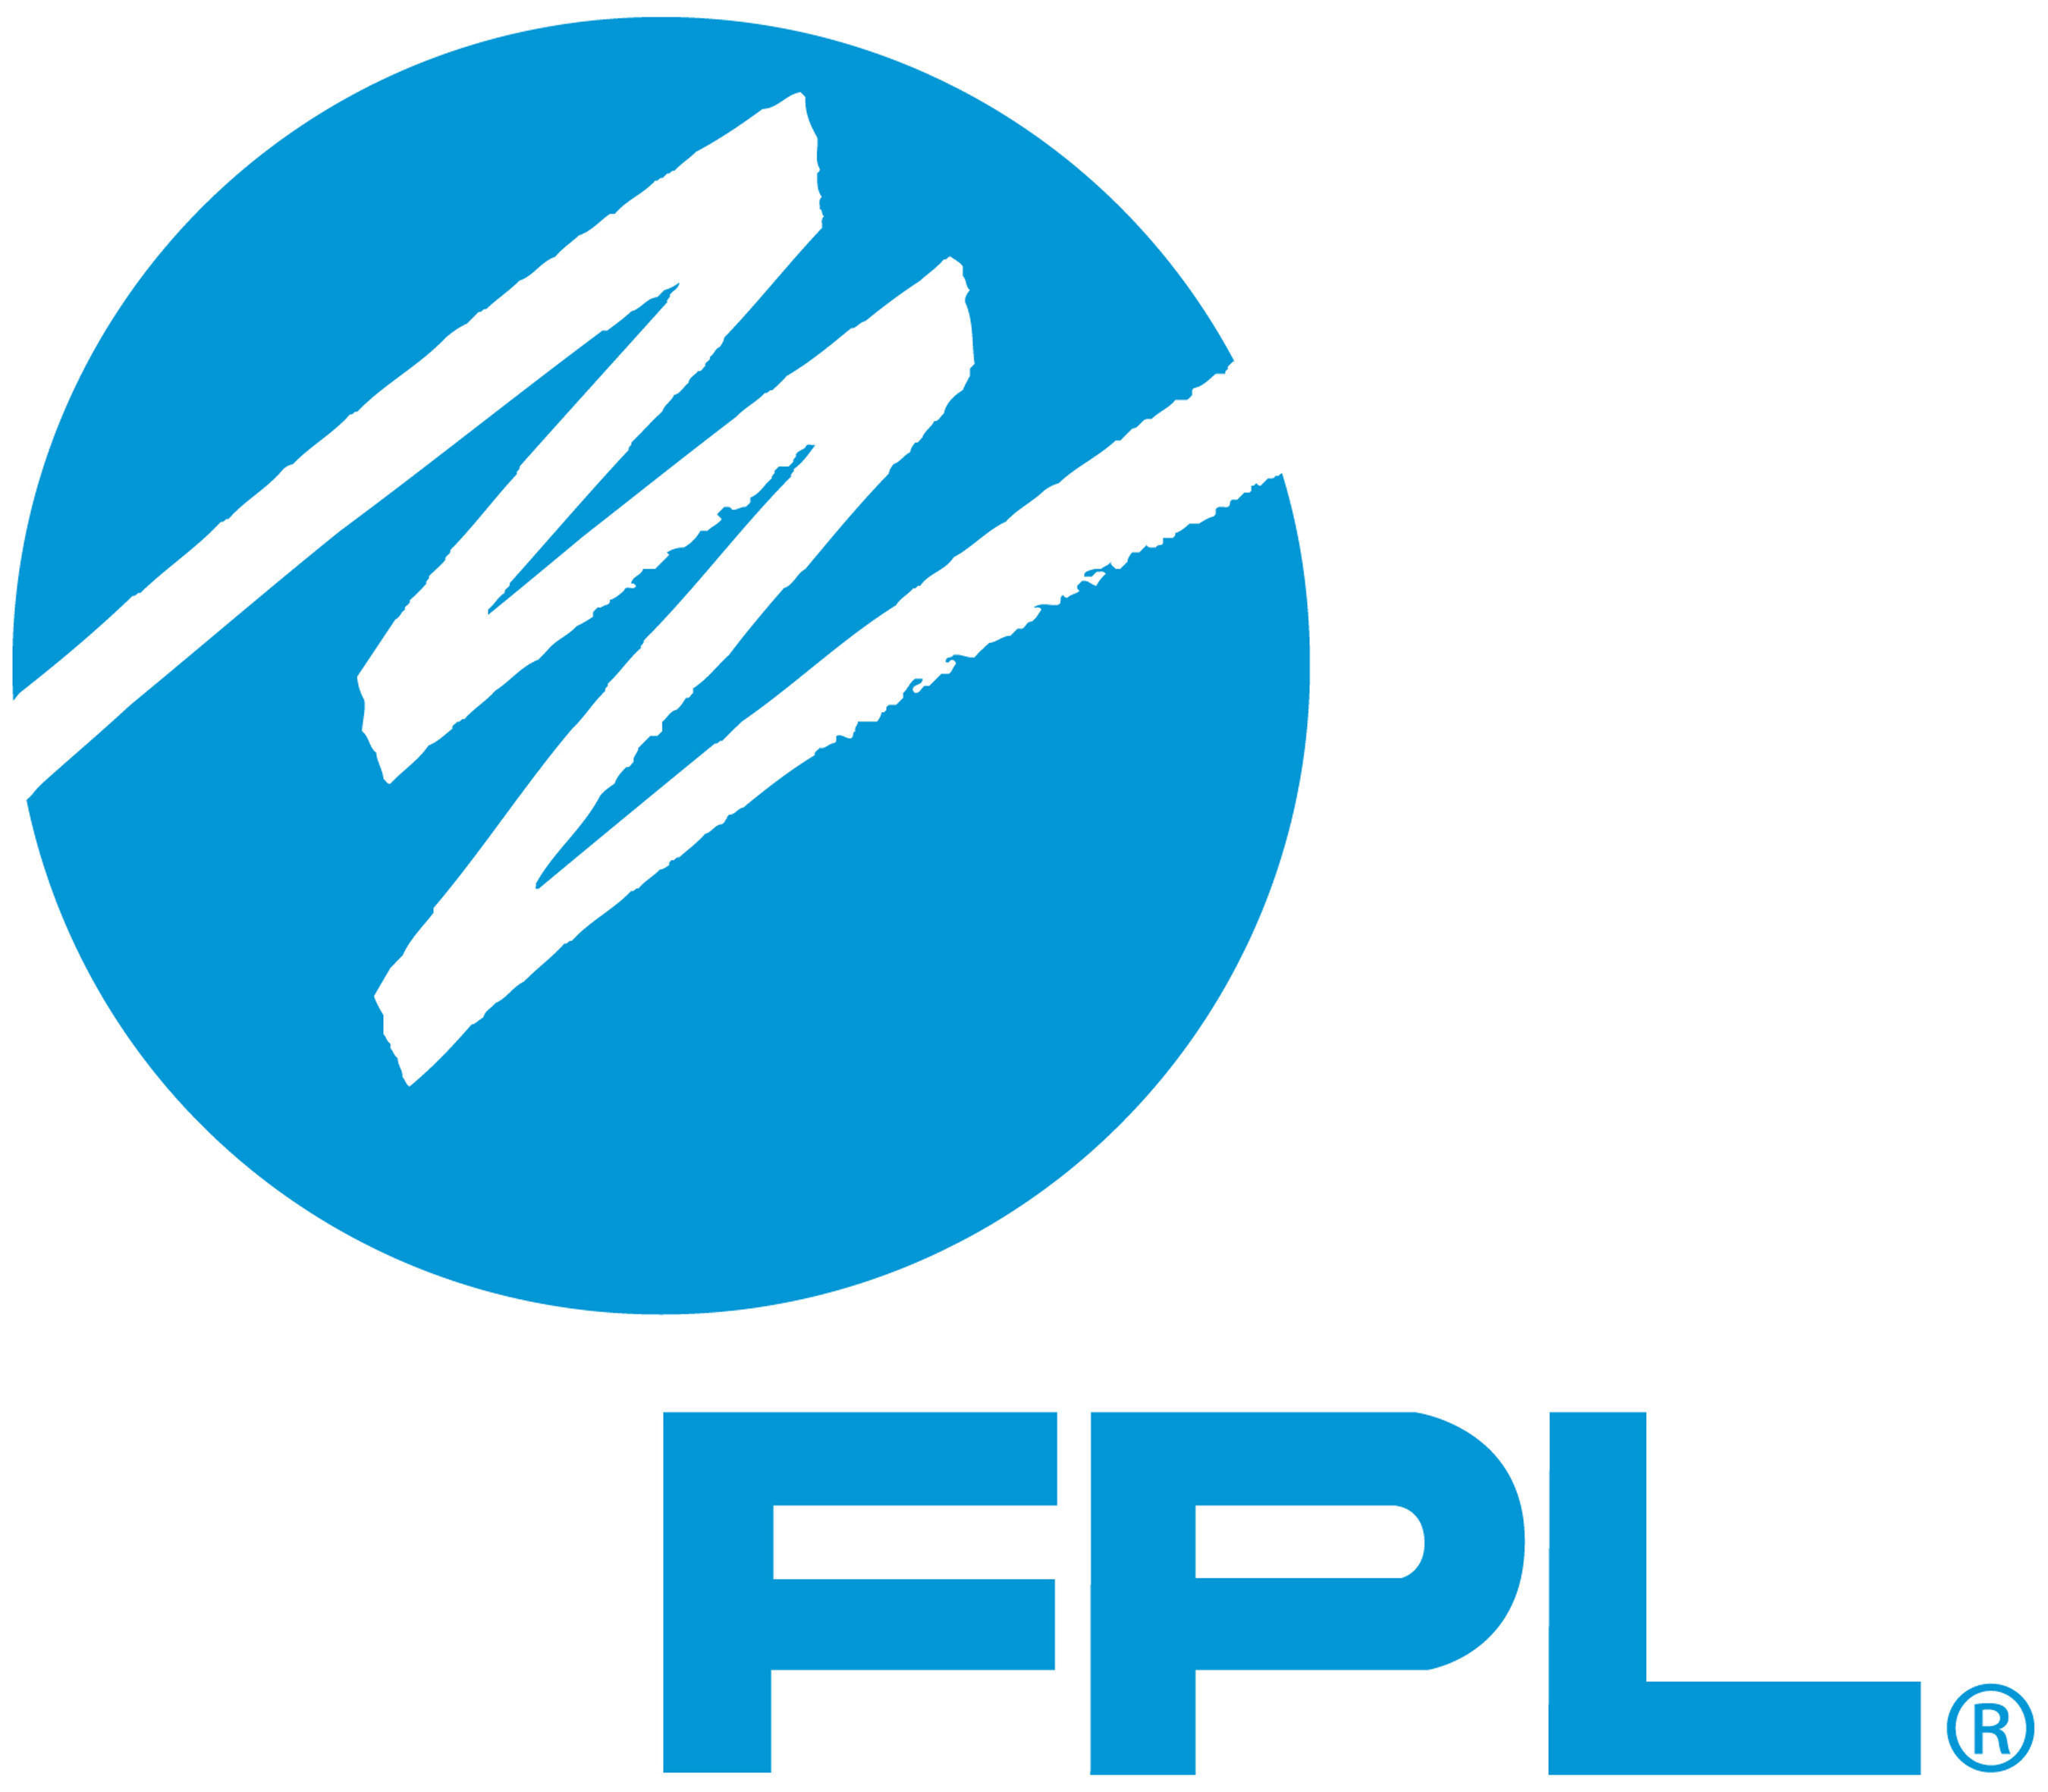 FPL bills to decrease again in 2016 as investments in efficiency deliver continued savings for customers